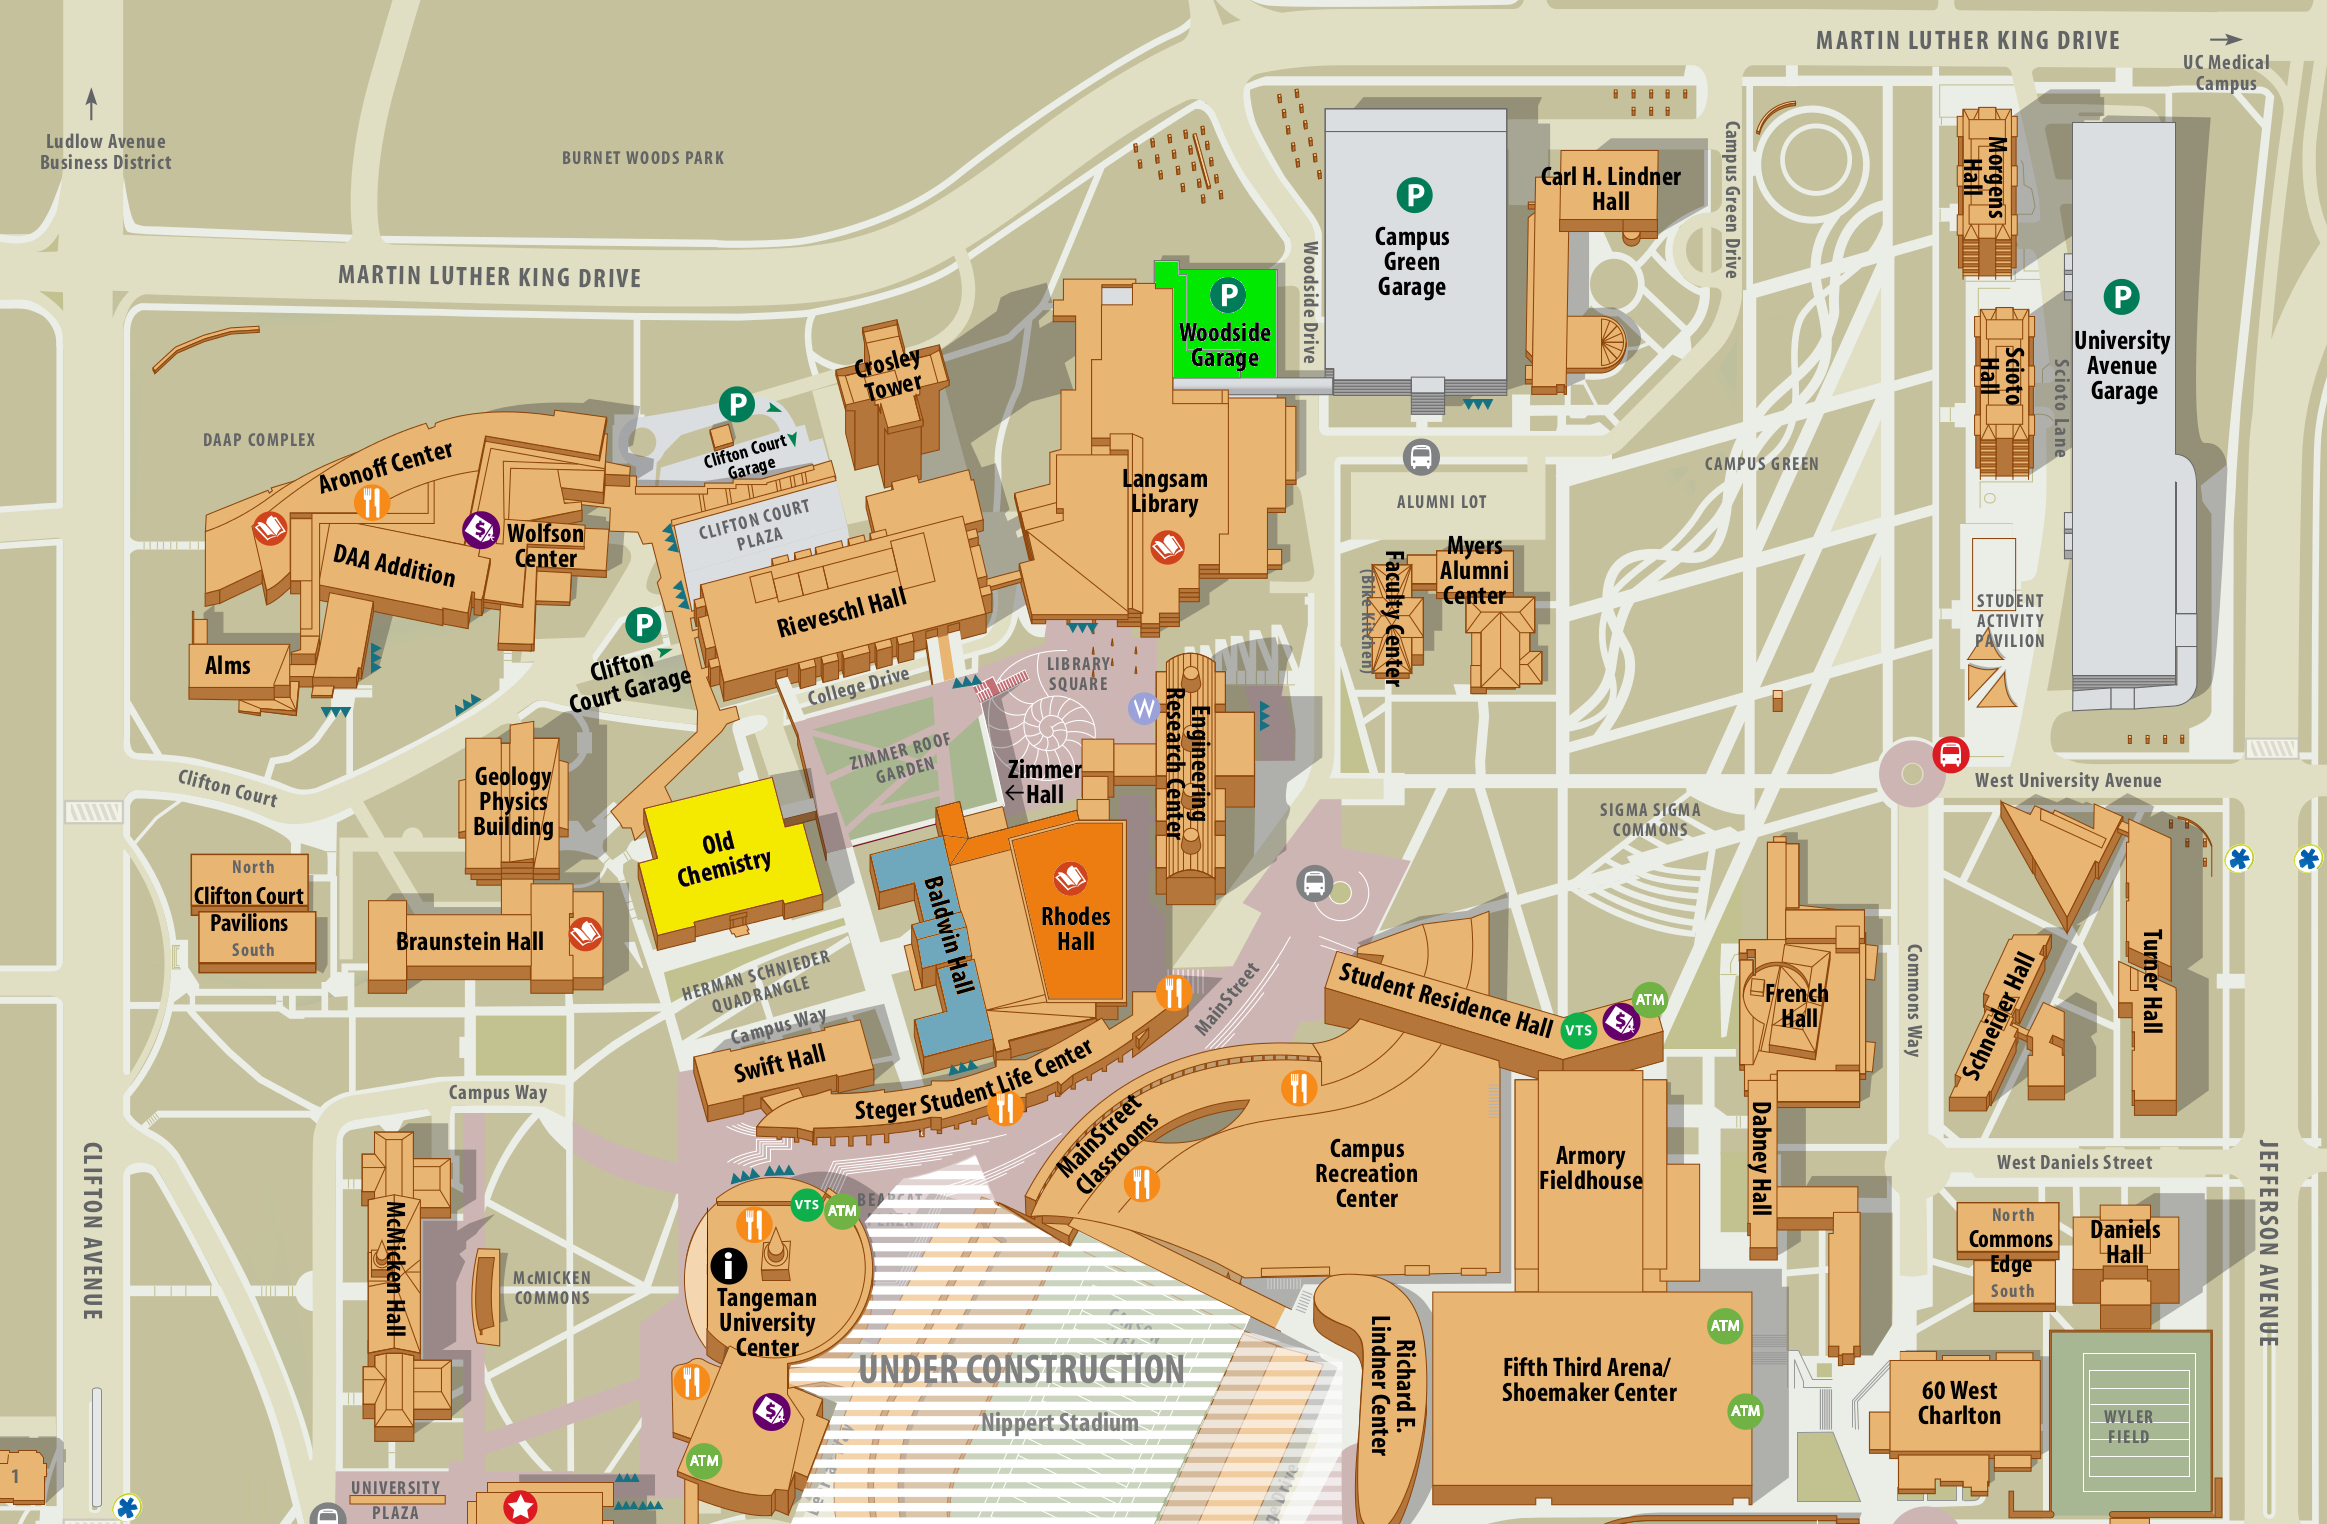 Uc West Campus Map Ecna Icpc 2018